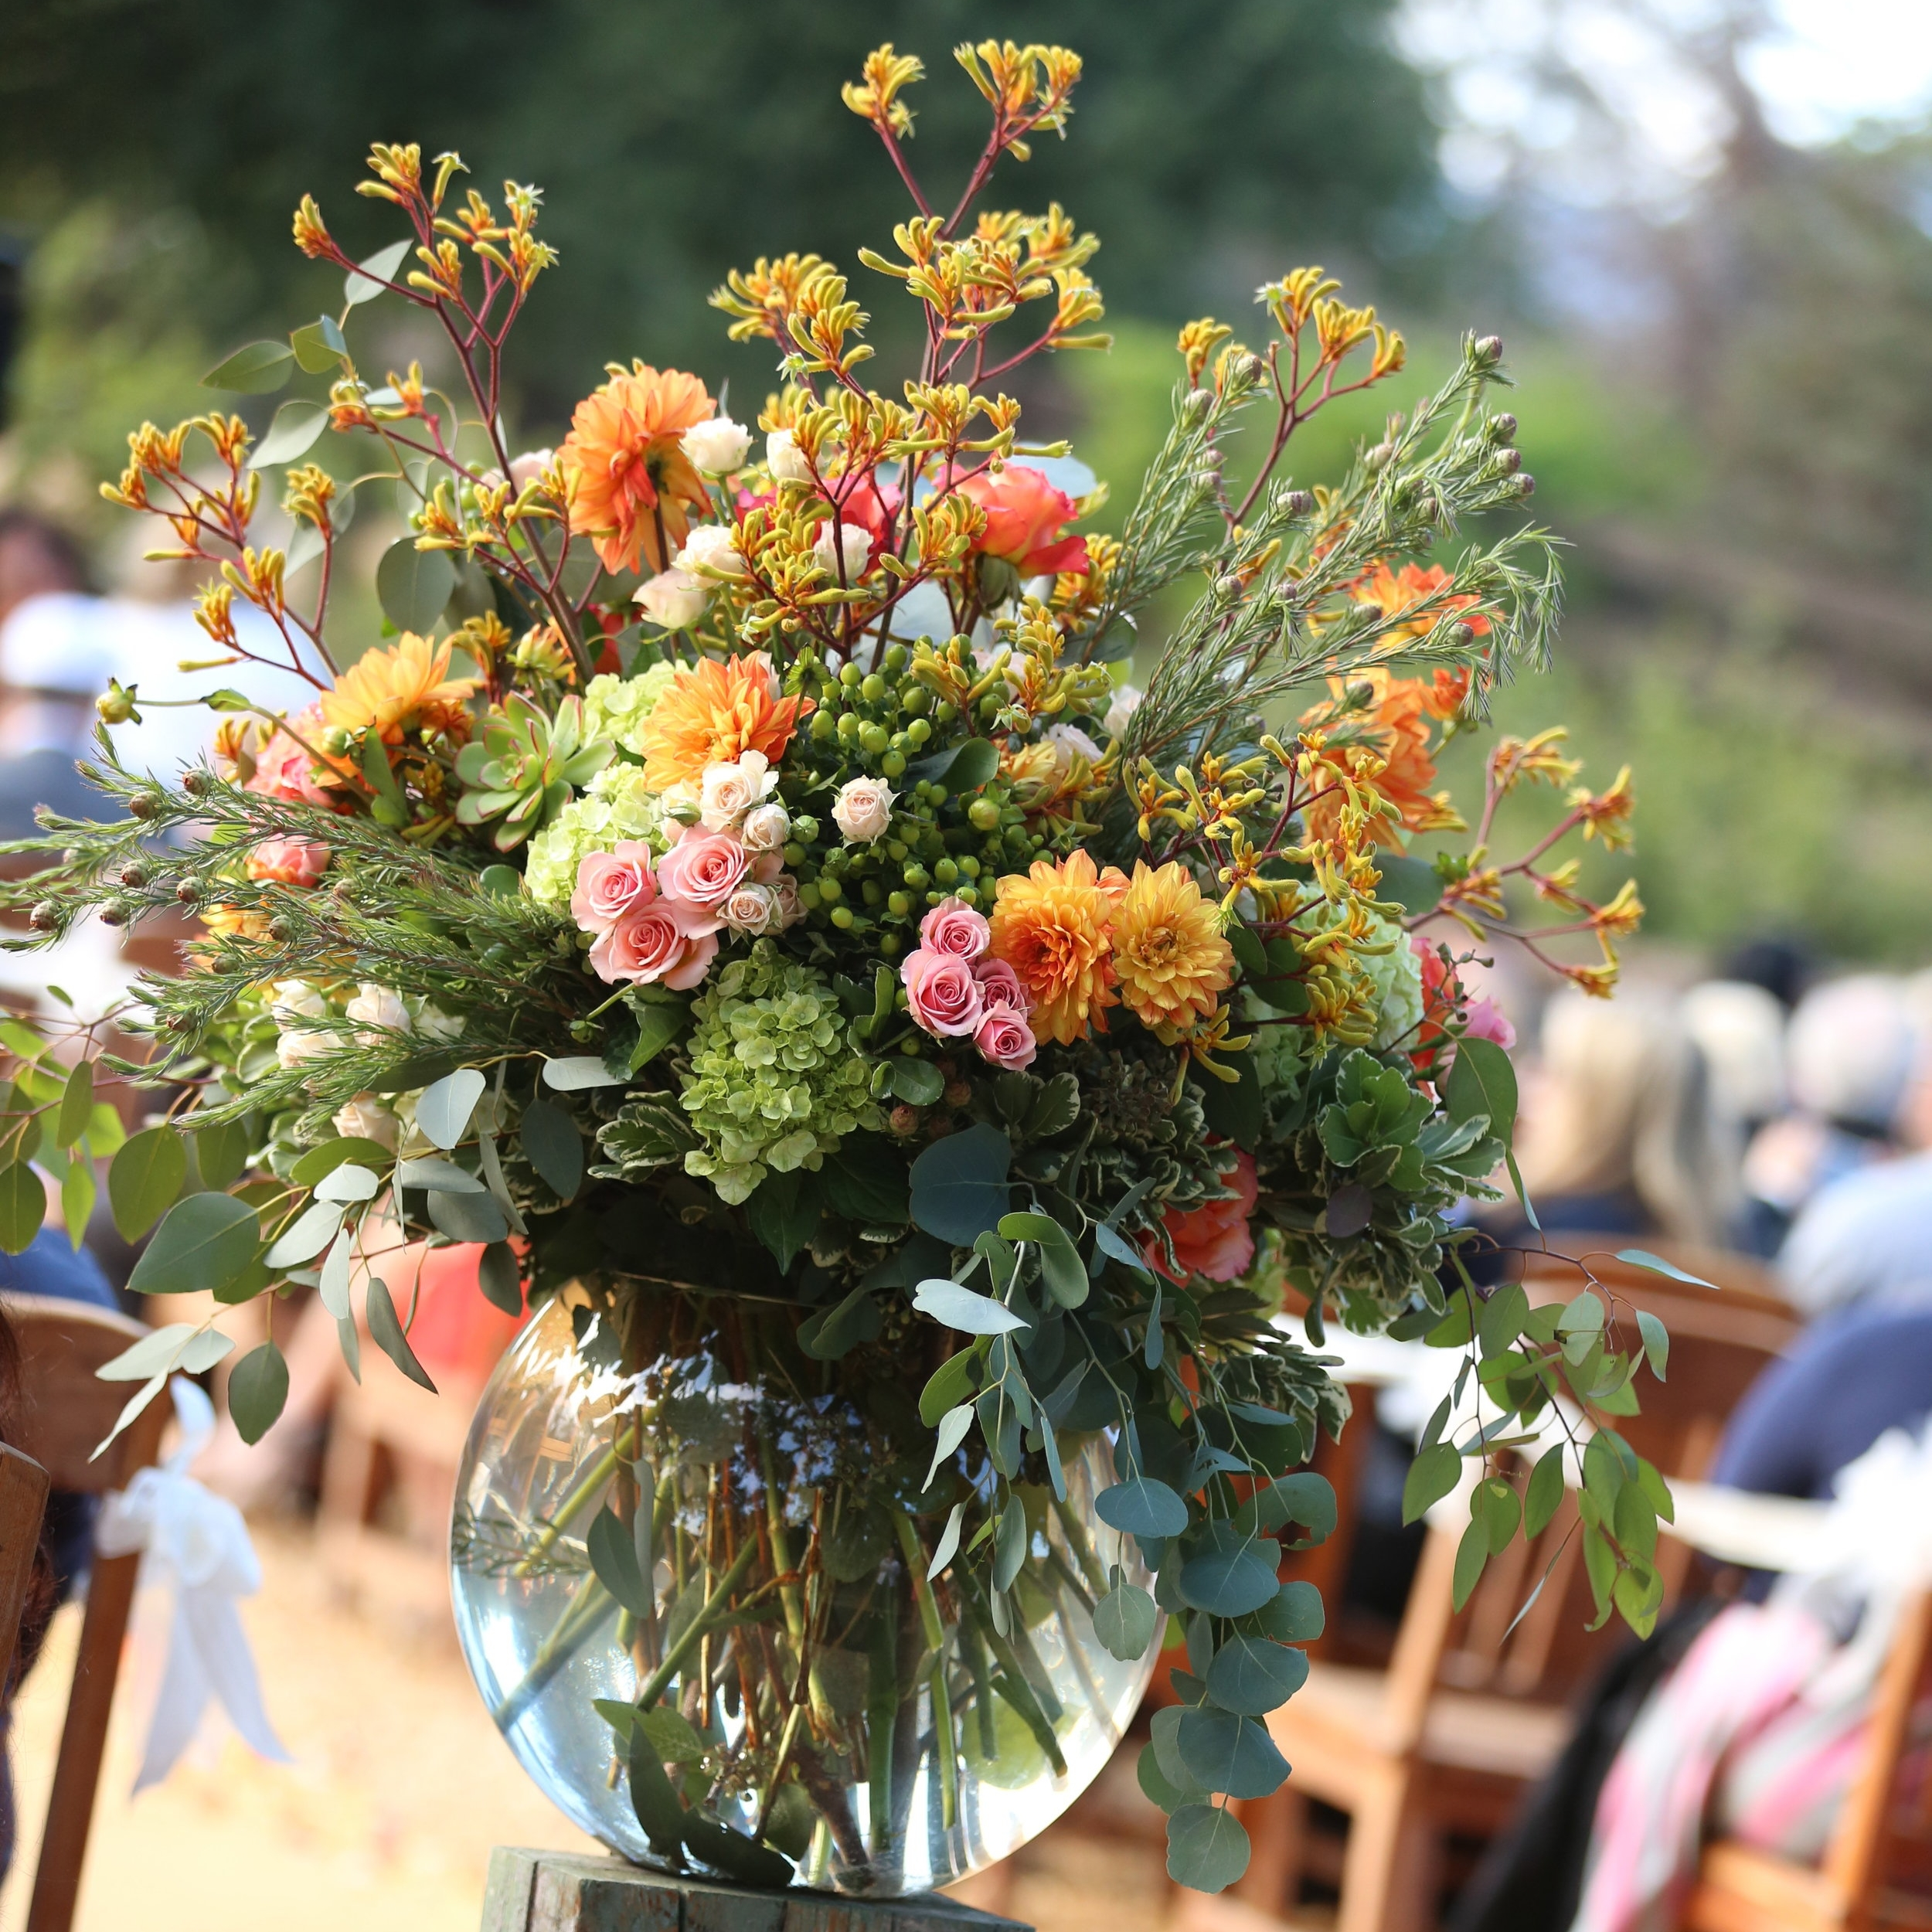 Large fish bowl vase with beautiful floral arrangements at a wedding ceremony